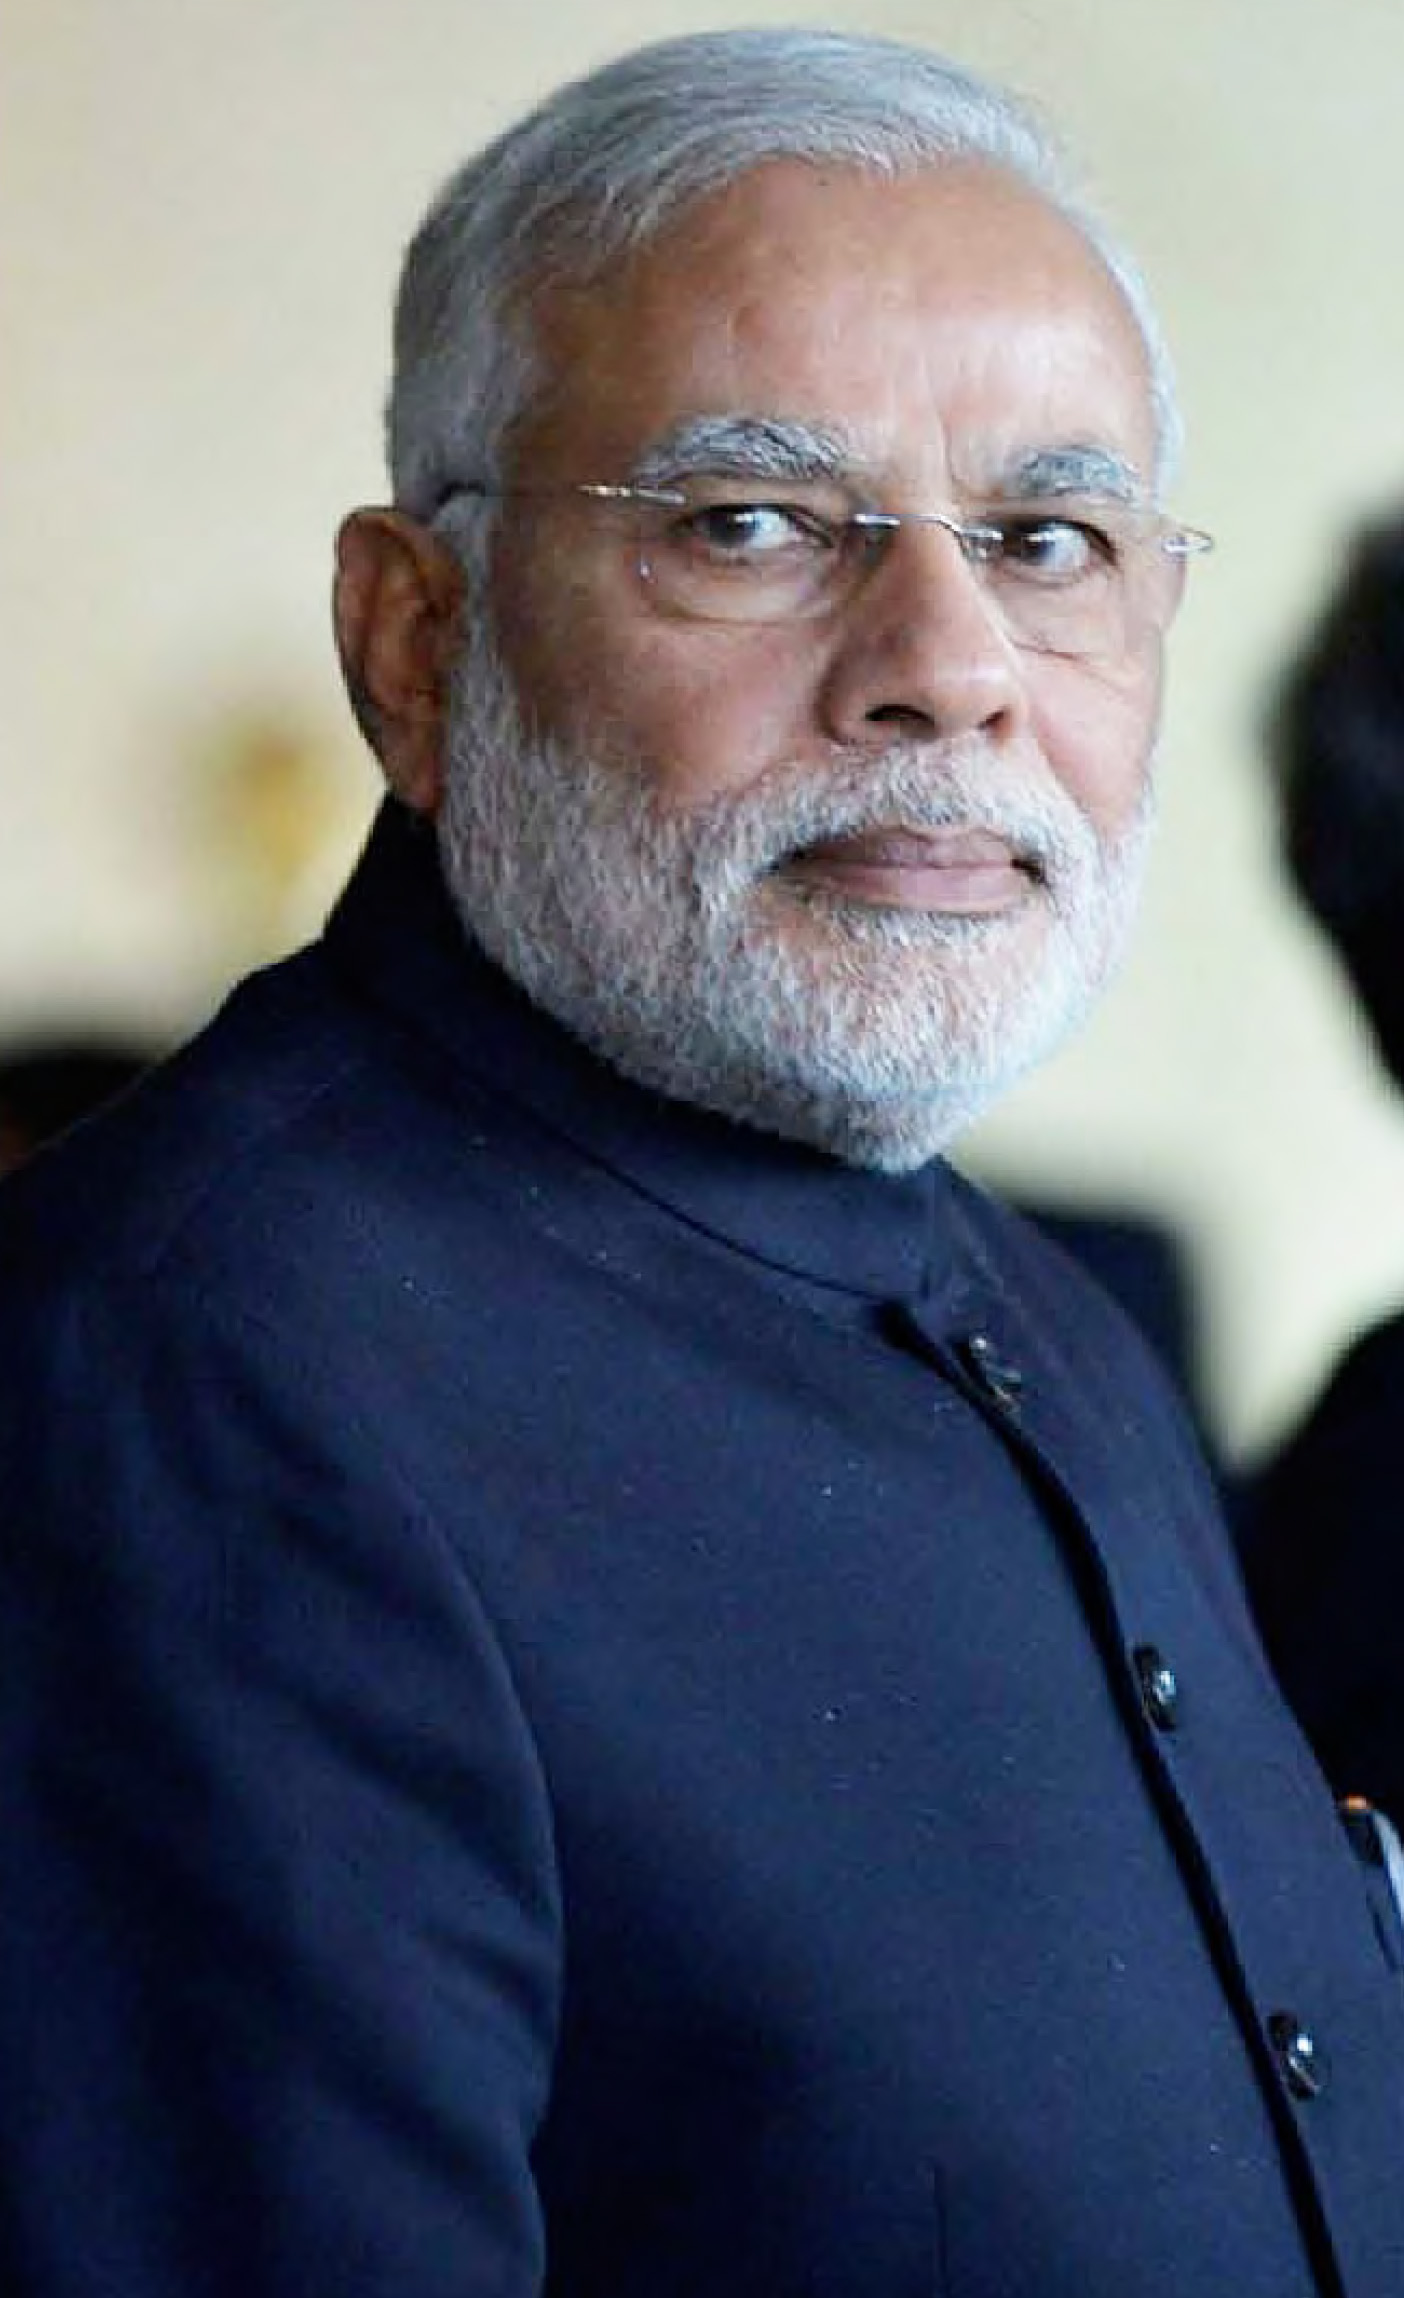 INDIA'S PRIME MINISTER MR. NAREDRA MODI IS lAYING GREAT EMPHASIS ON THE ACT EAST POlICY